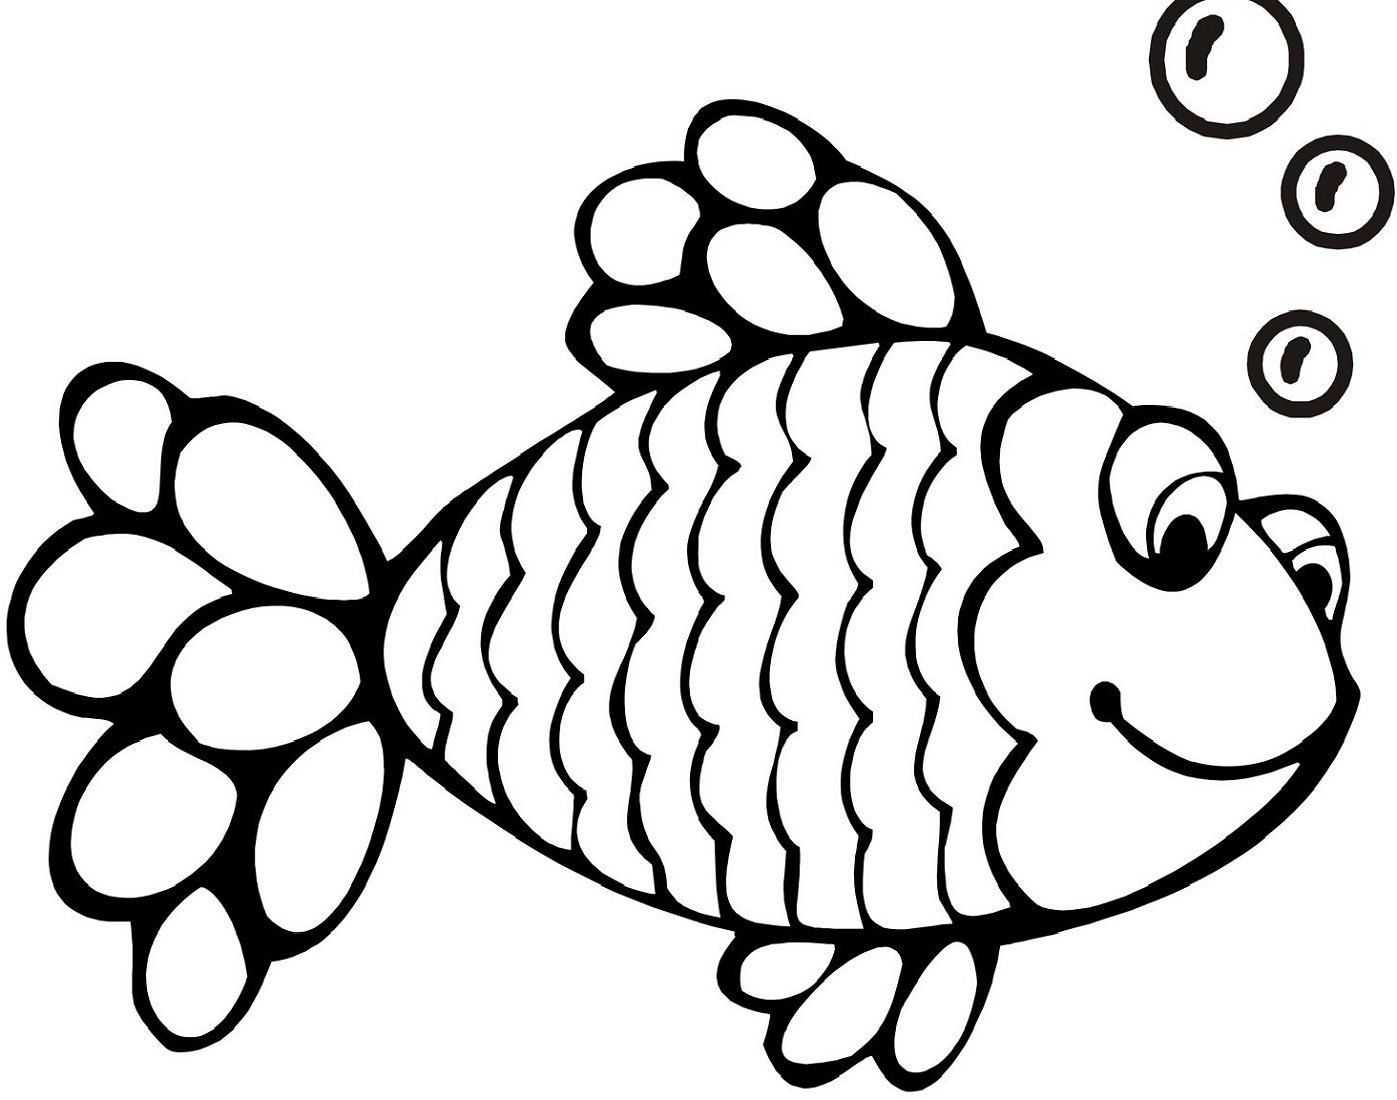 Rainbow Fish Bubble Coloring Printable Educative Printable Fish Coloring Page Mermaid Coloring Pages Coloring Pages